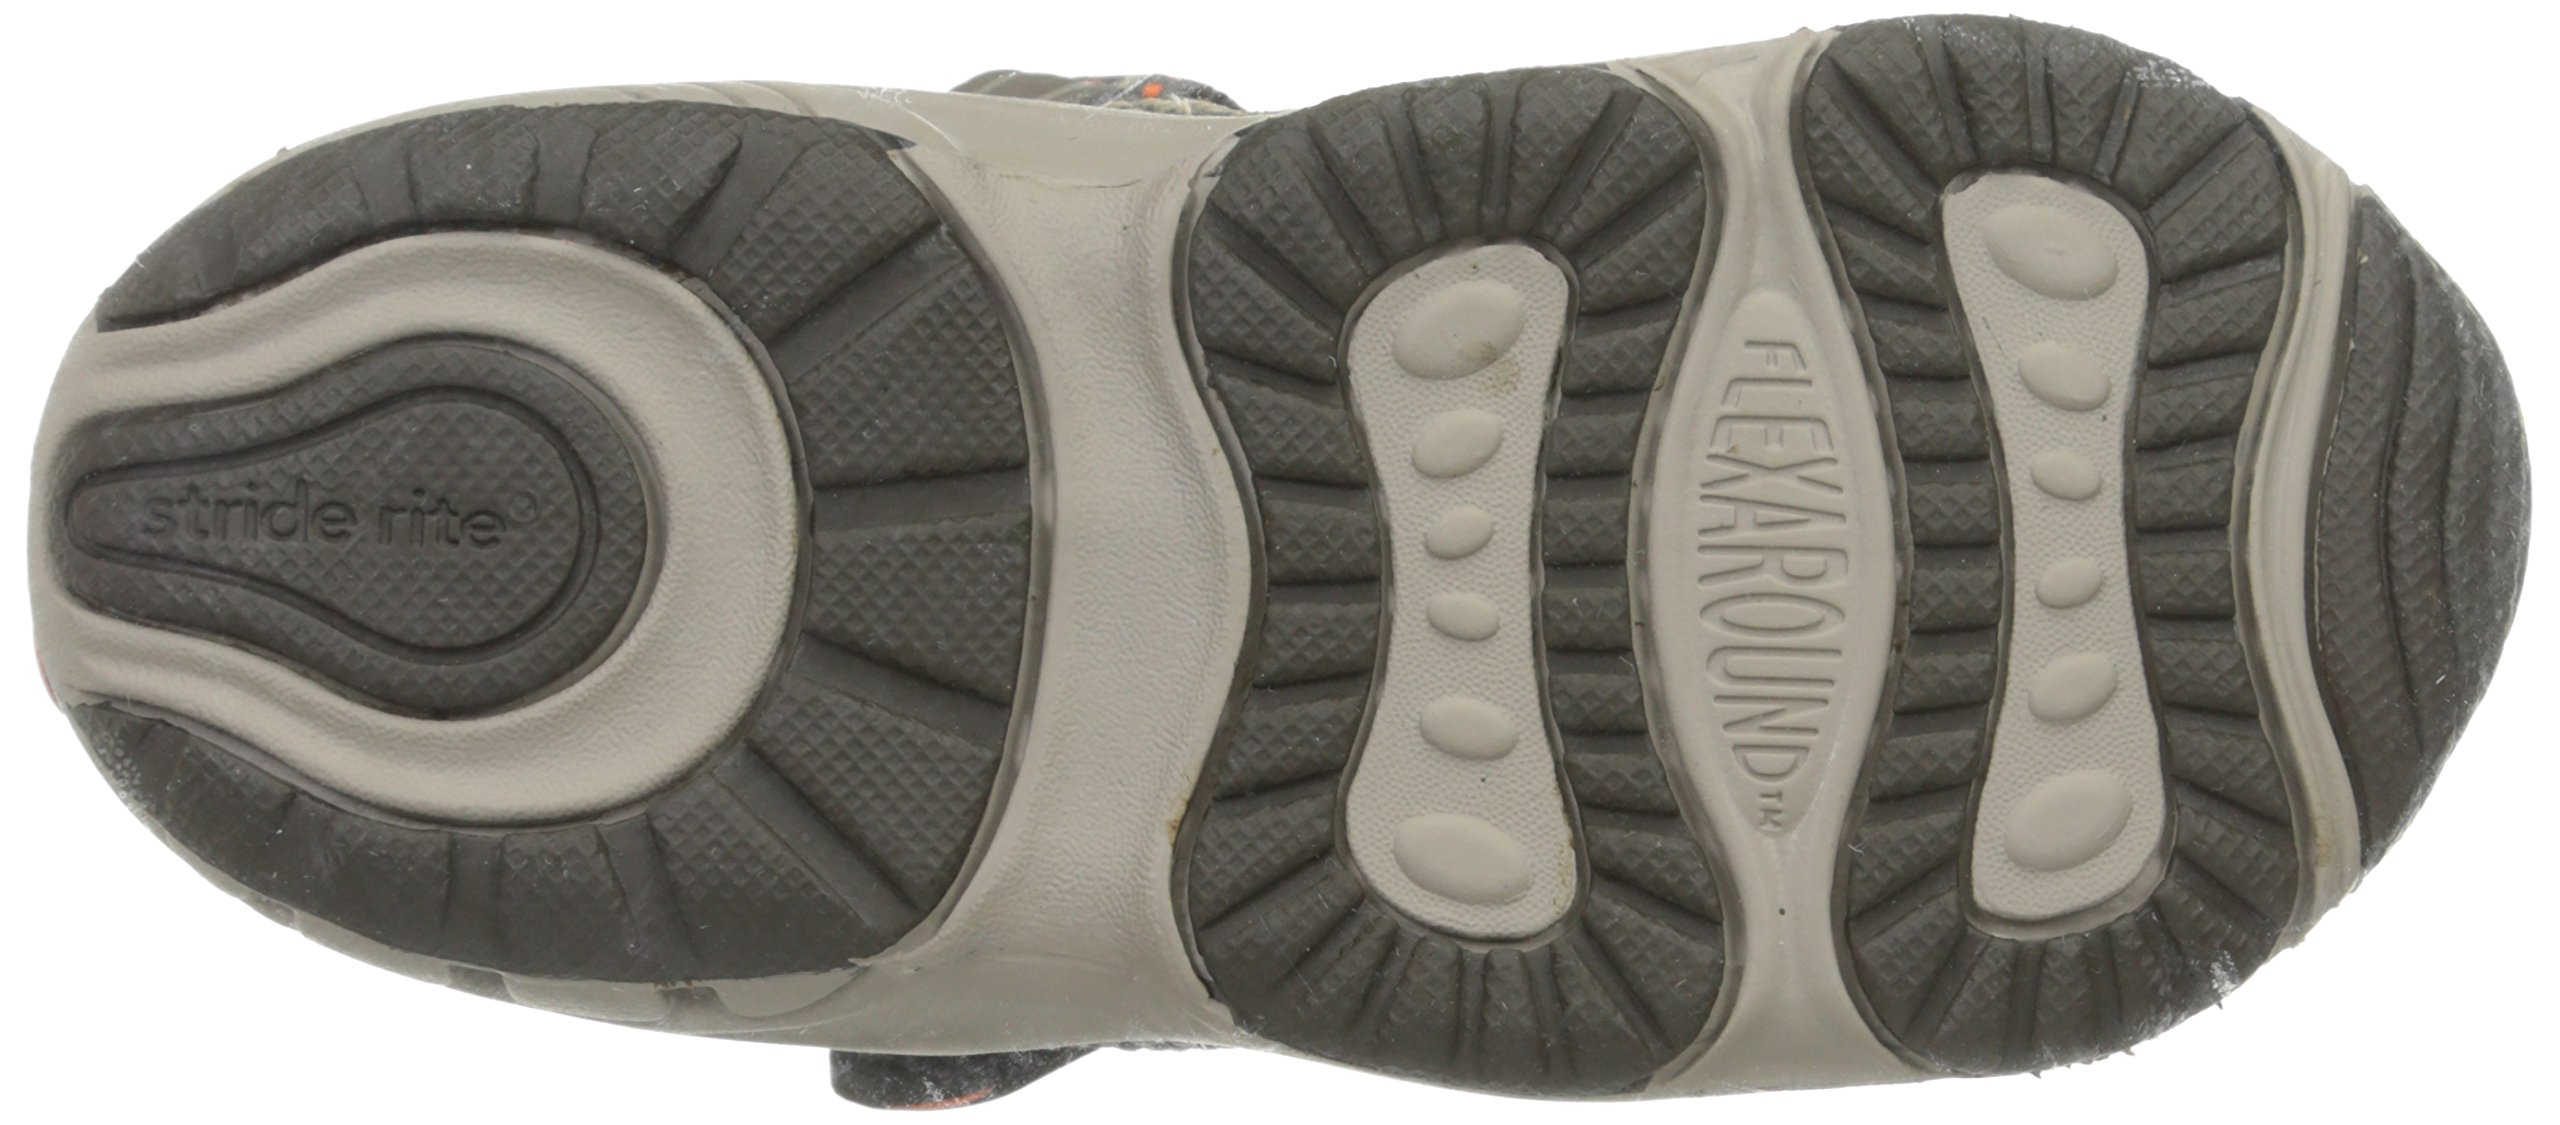 Stride Rite Made 2 Play Baby Ian Sneaker (Toddler),Taupe,4.5 XW US Toddler by Stride Rite (Image #3)